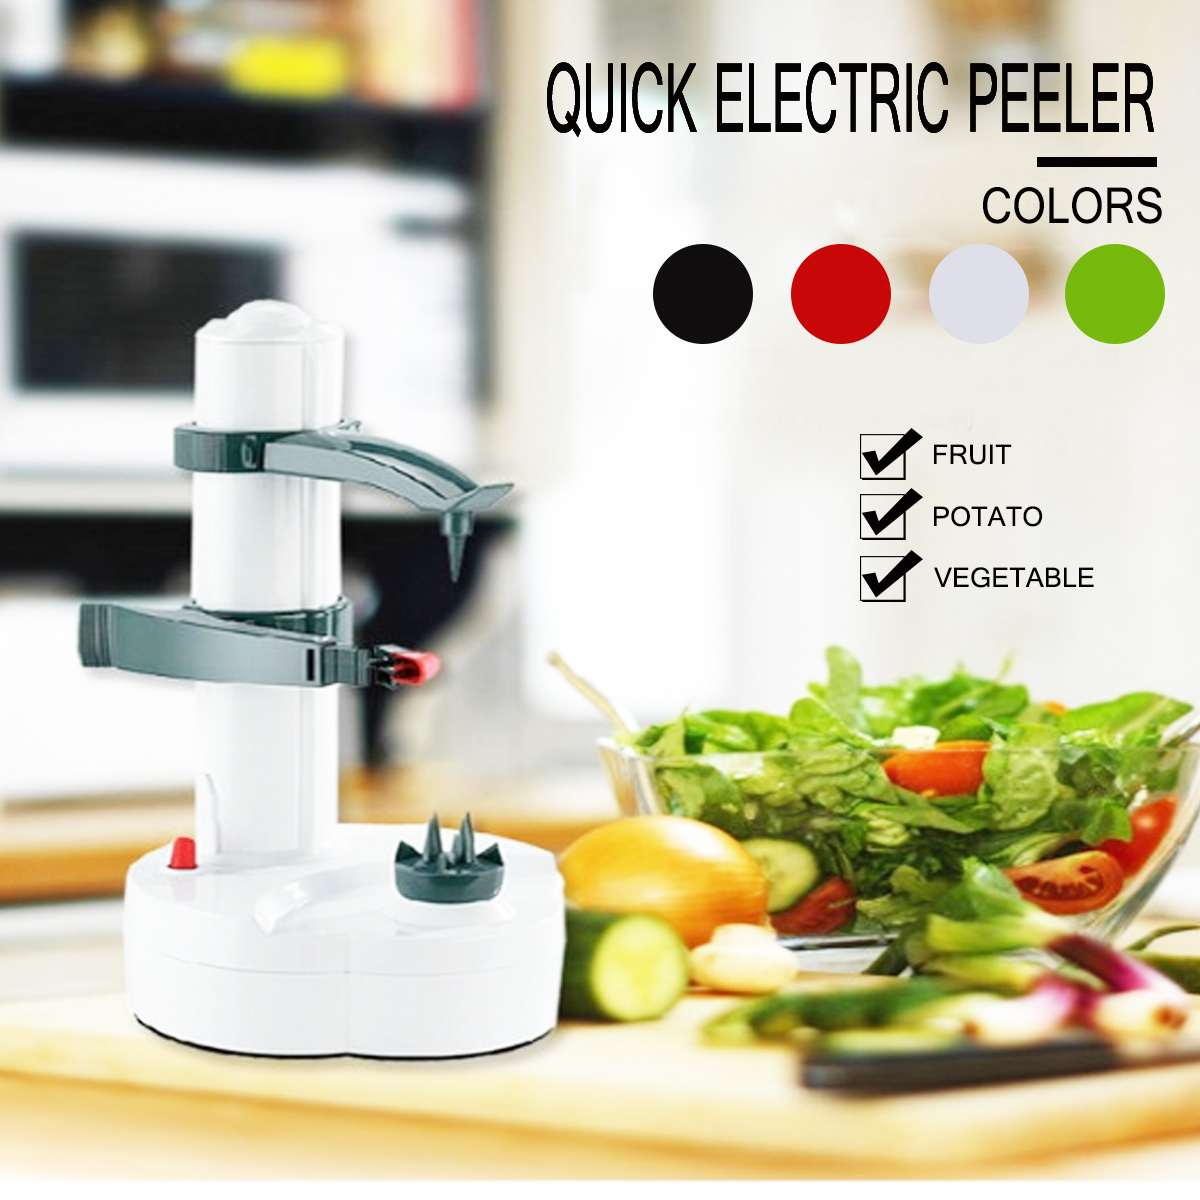 Stainless Steel Electric Peeler Vegetable Fruit Peeler Peeling Machine for Apple Fruit Machine Peeled Tool Home Kitchen